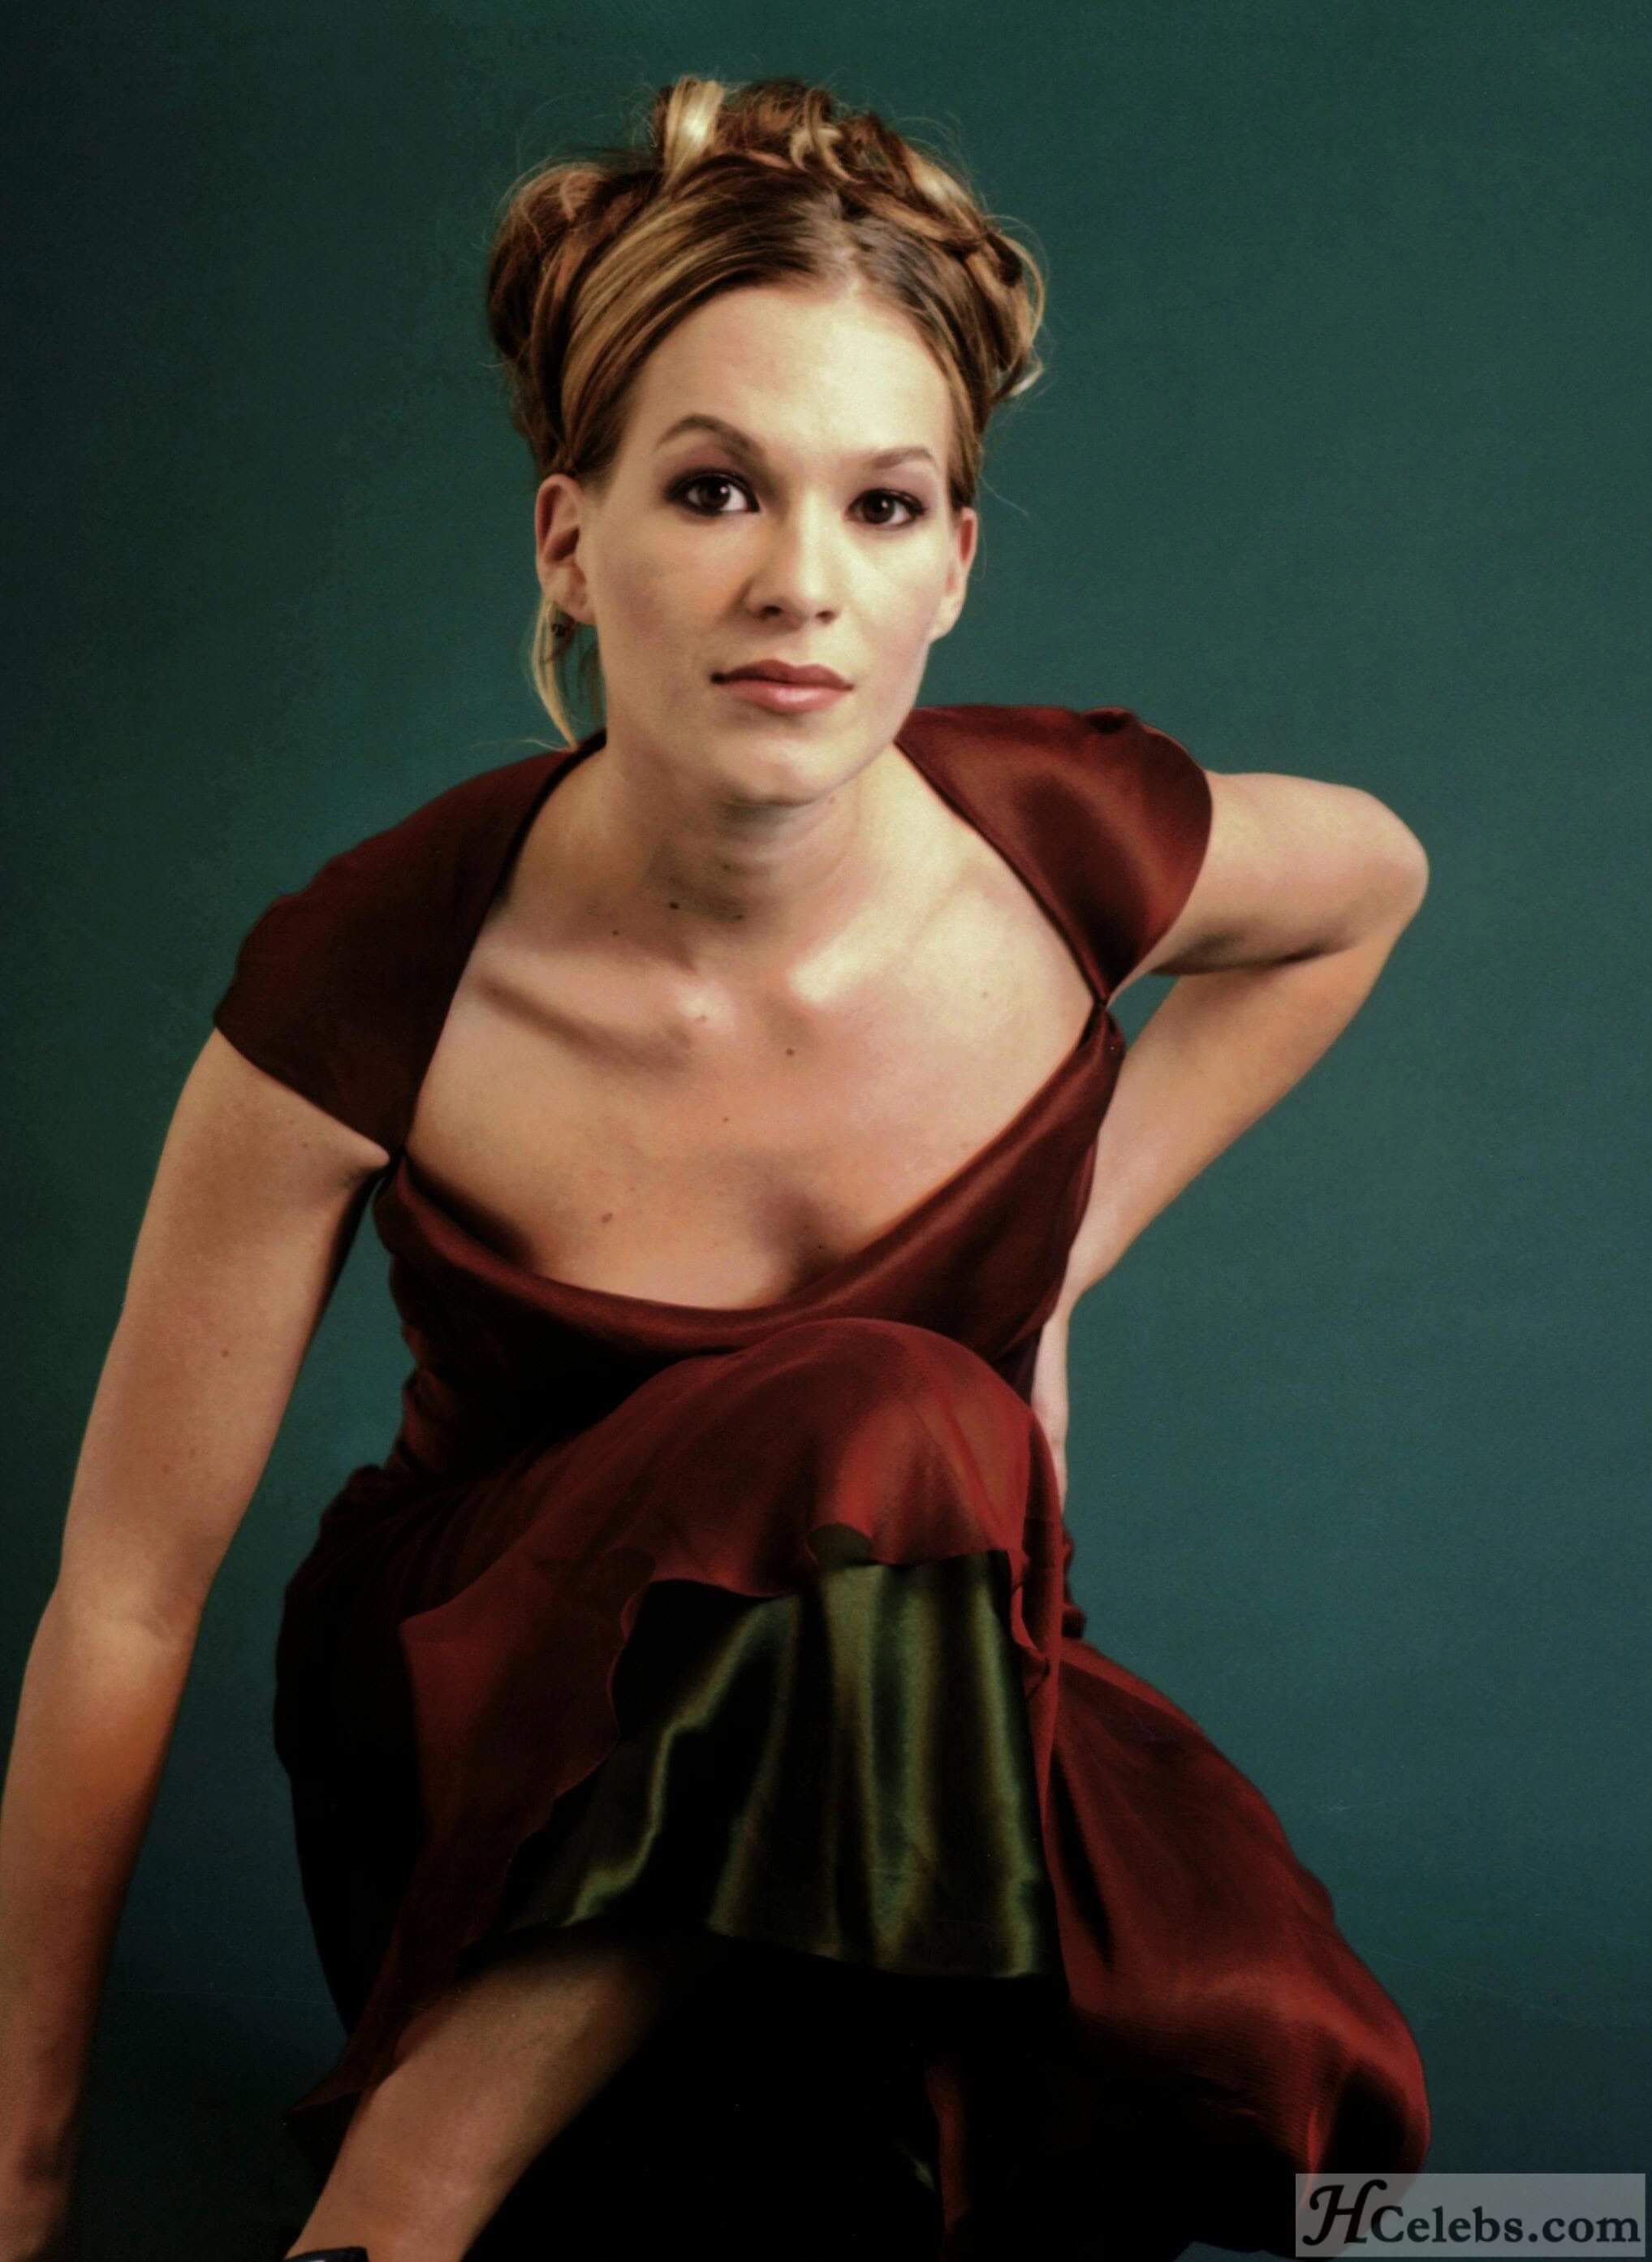 49 Hot Pictures Of Franka Potente Prove That She Is As Sexy As Can Be